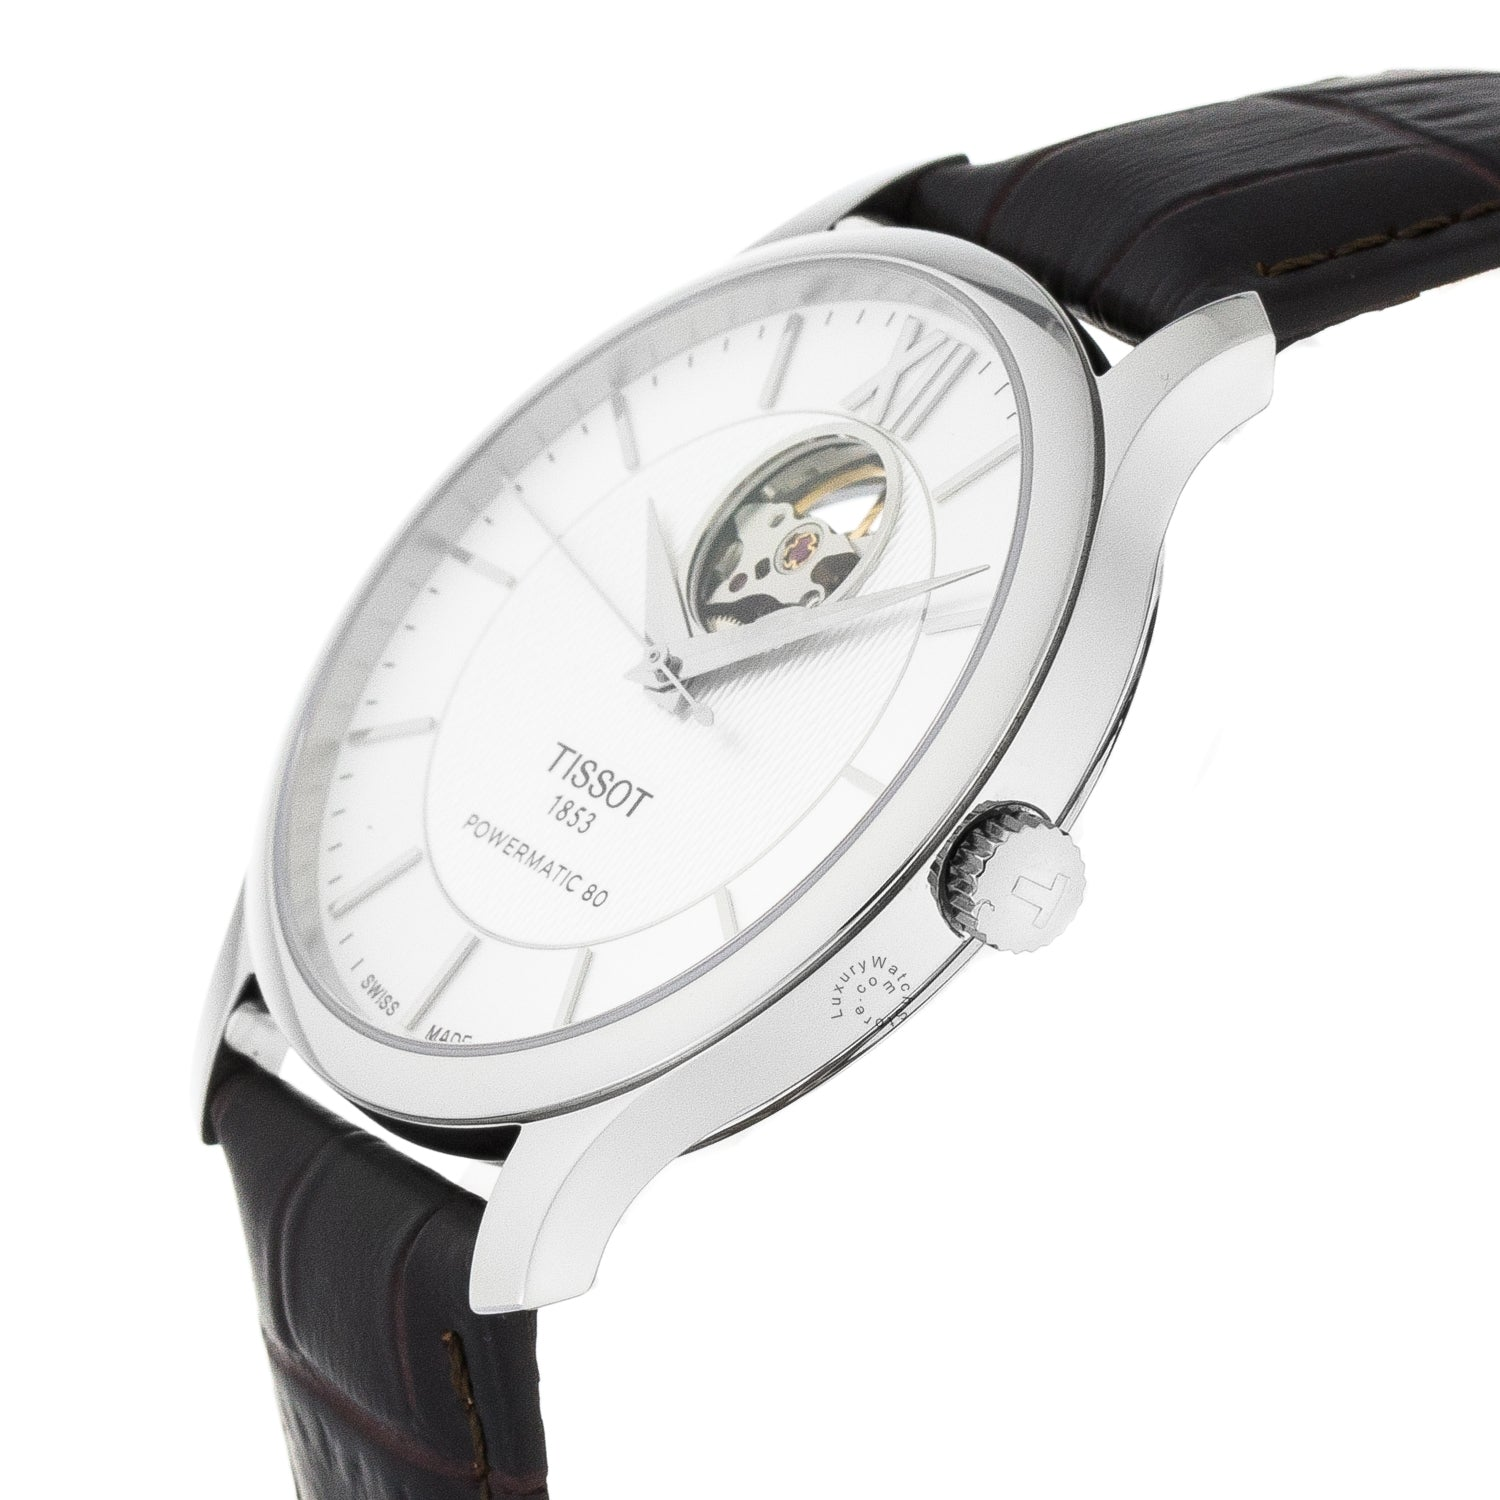 Tissot Tradition Powermatic 80 Open Heart Auto Watch T0639071603800